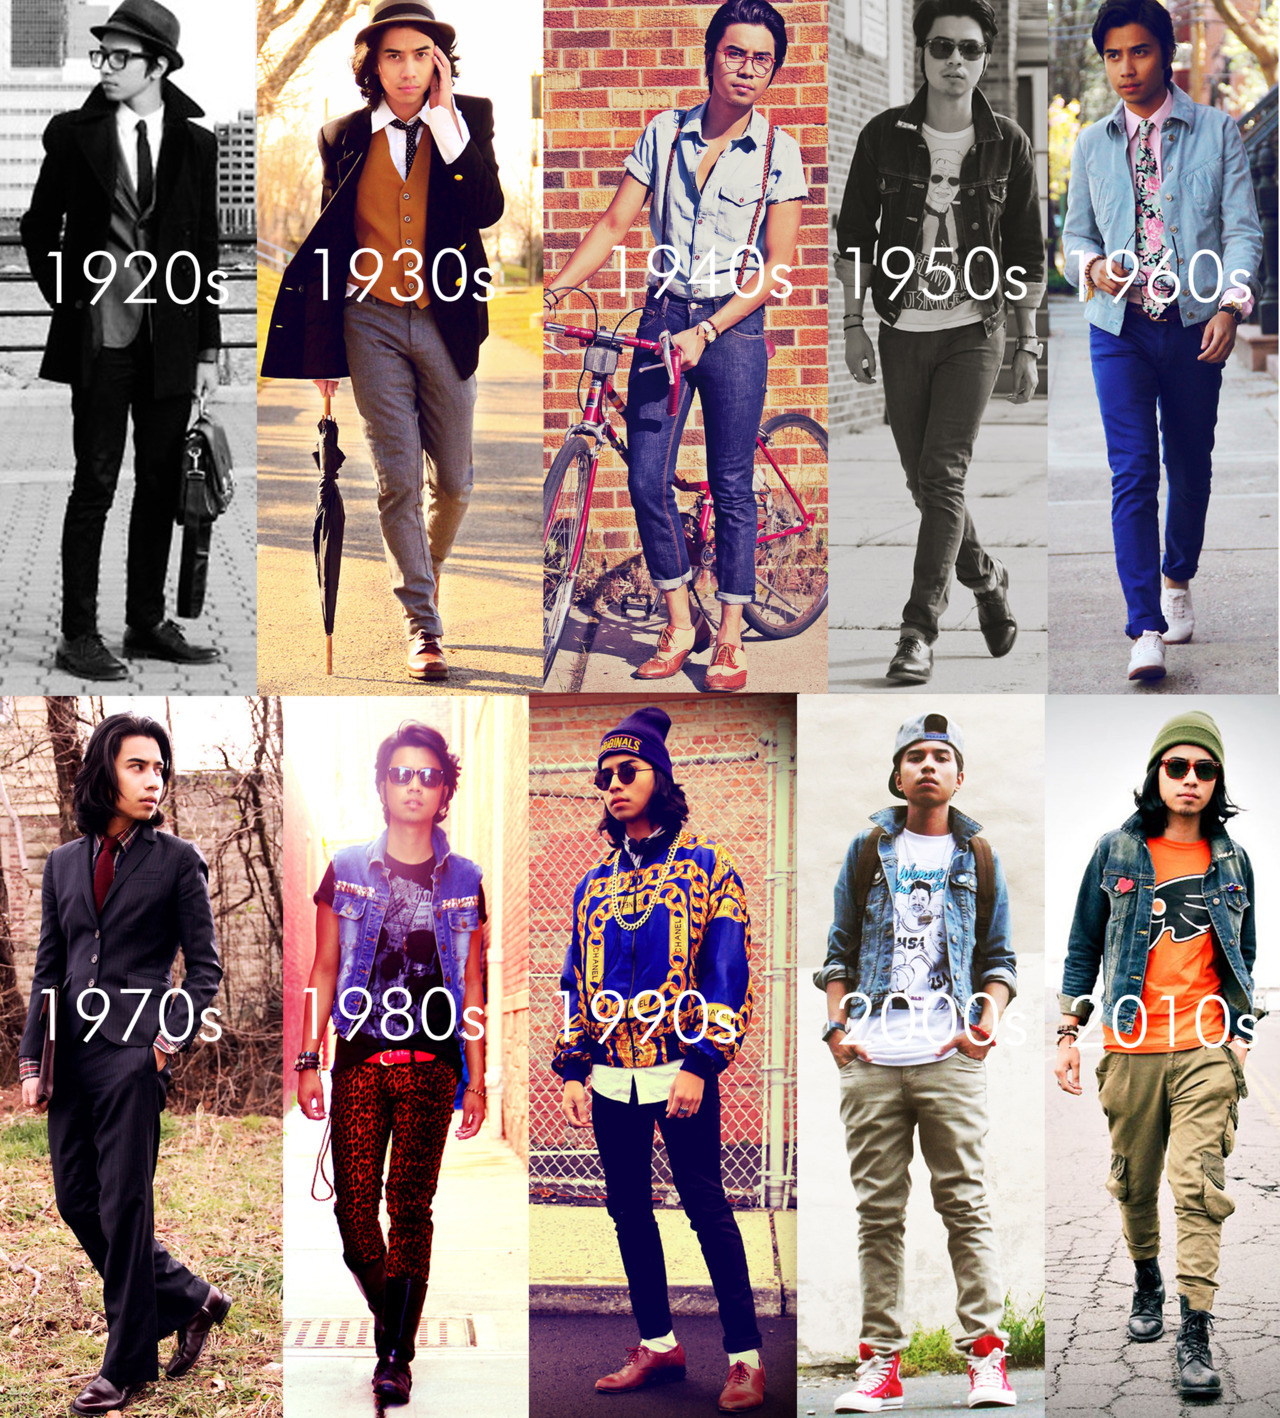 dennysworld:  ONE MAN. AN OUTFIT FOR EVERY DECADE. FASHION CHAMELEON.